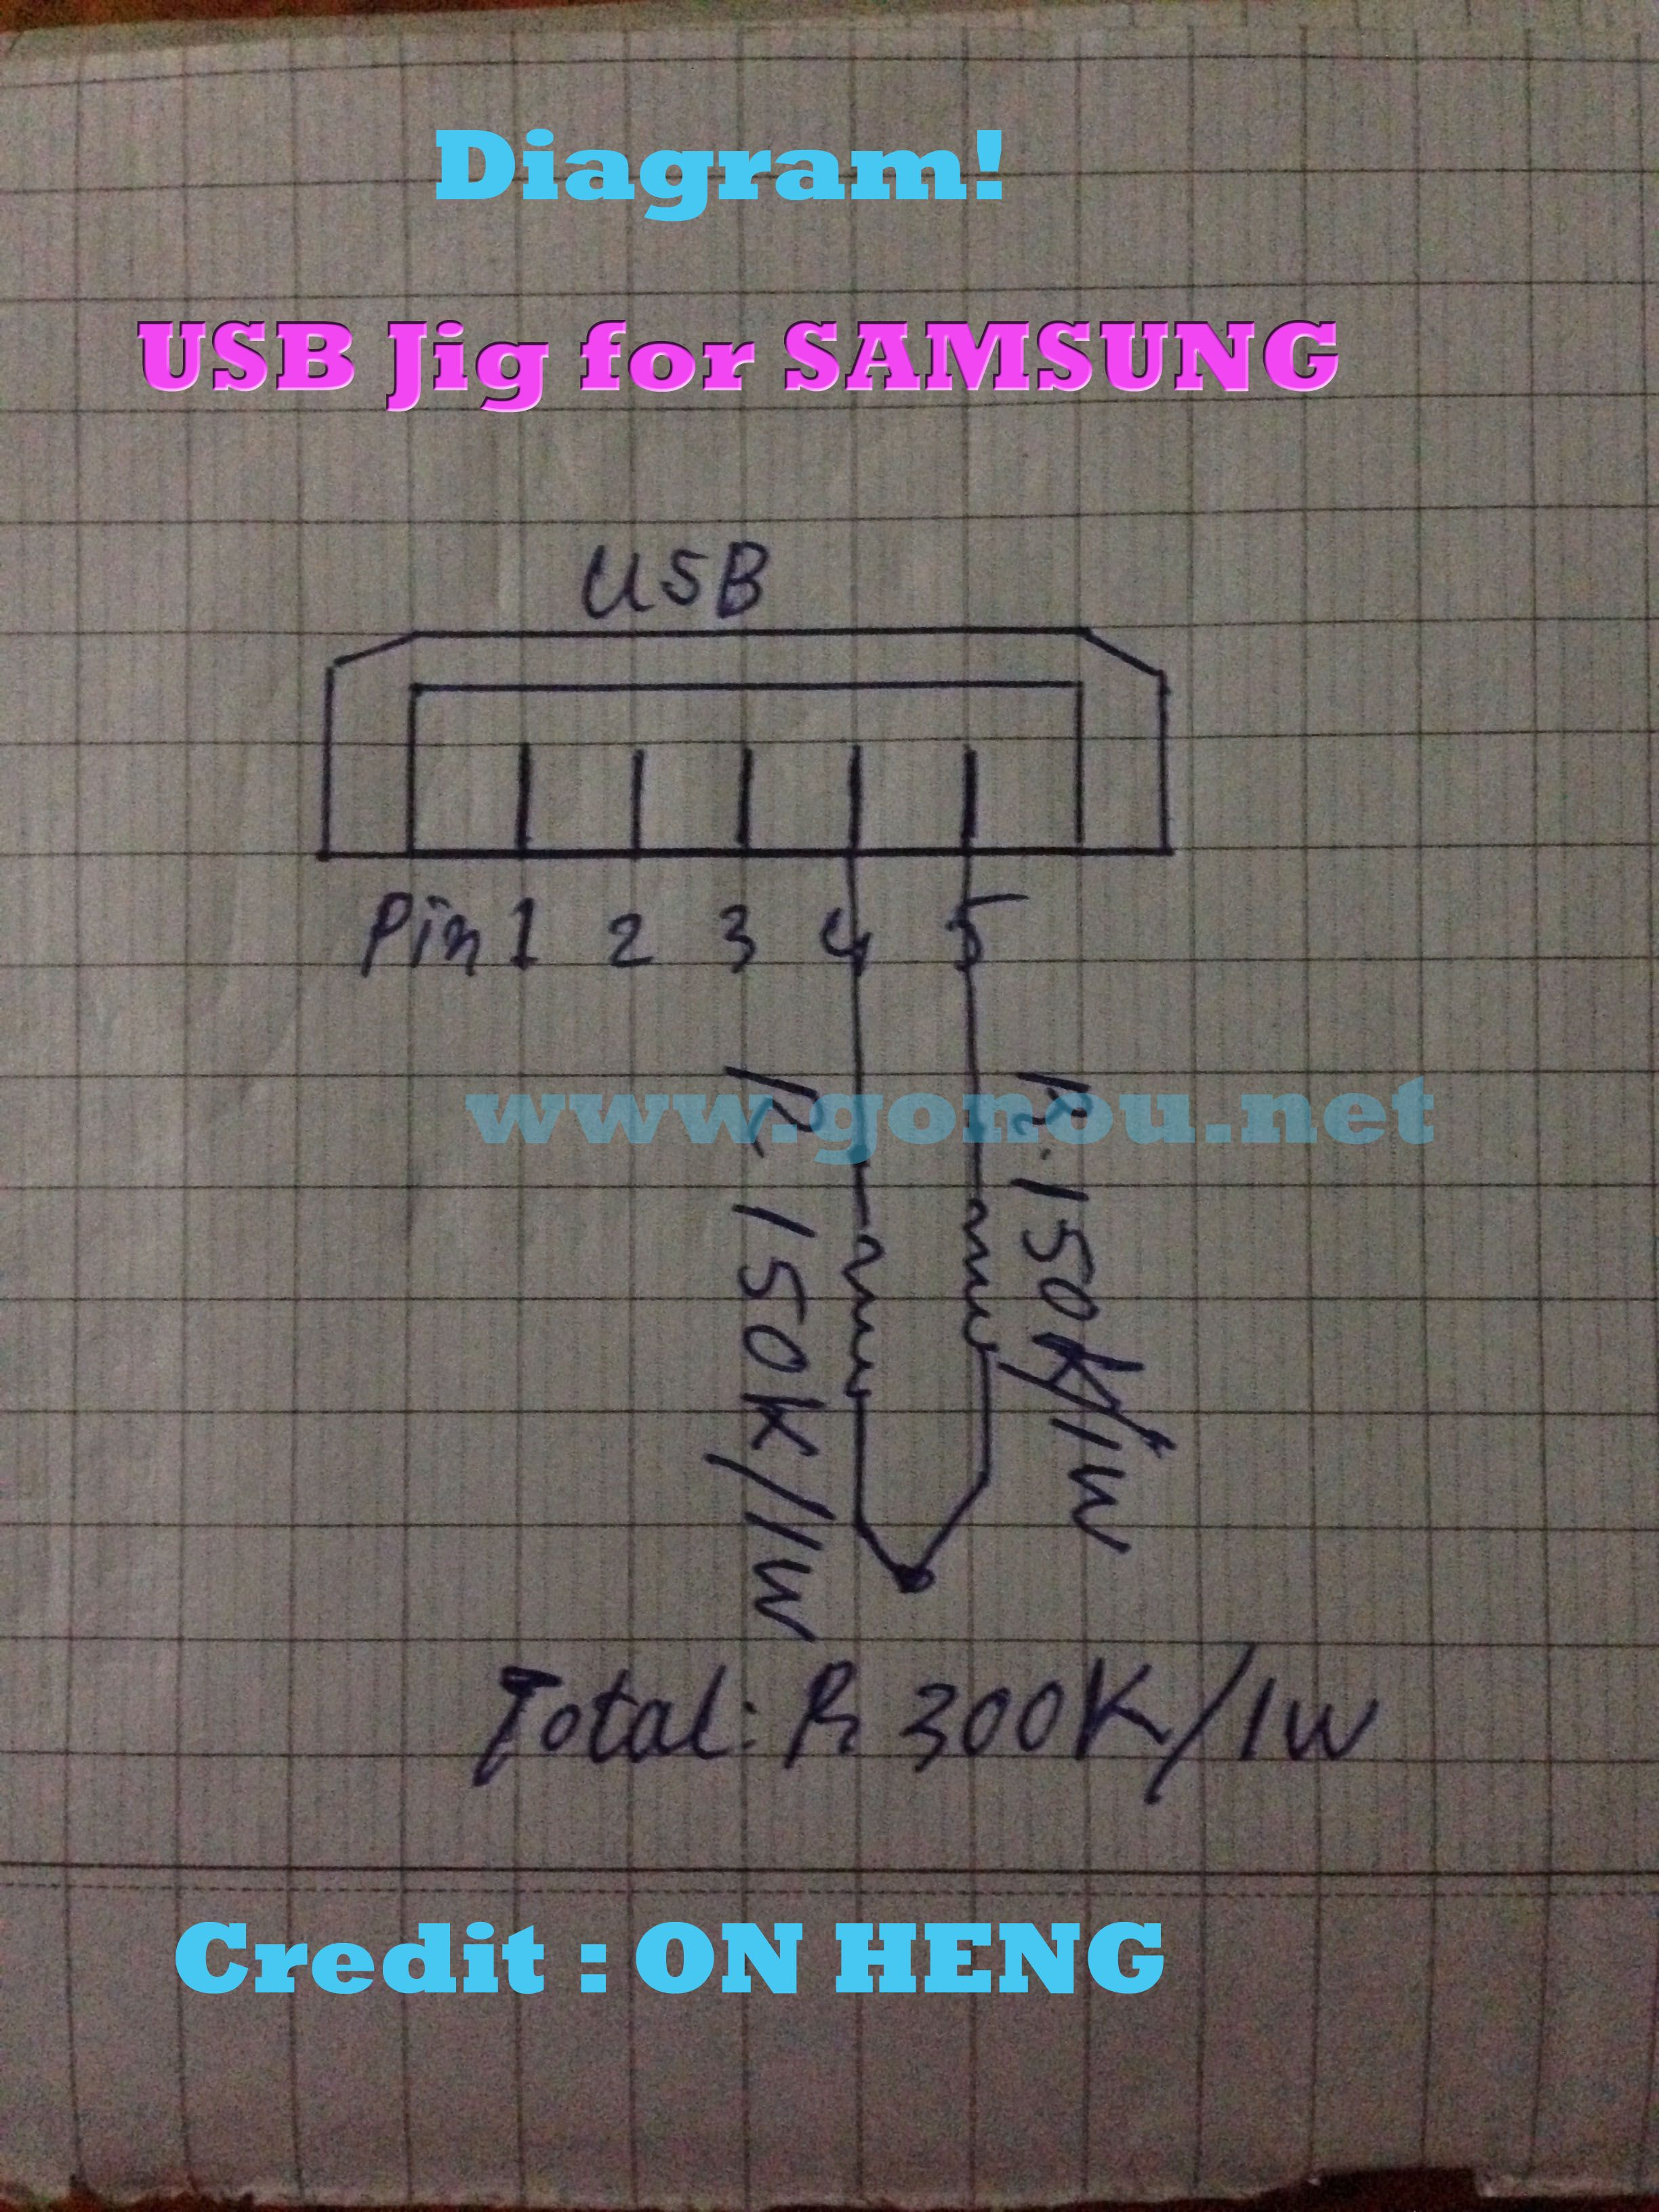 medium resolution of diagram usb jig for samsung you may look for about how to make a